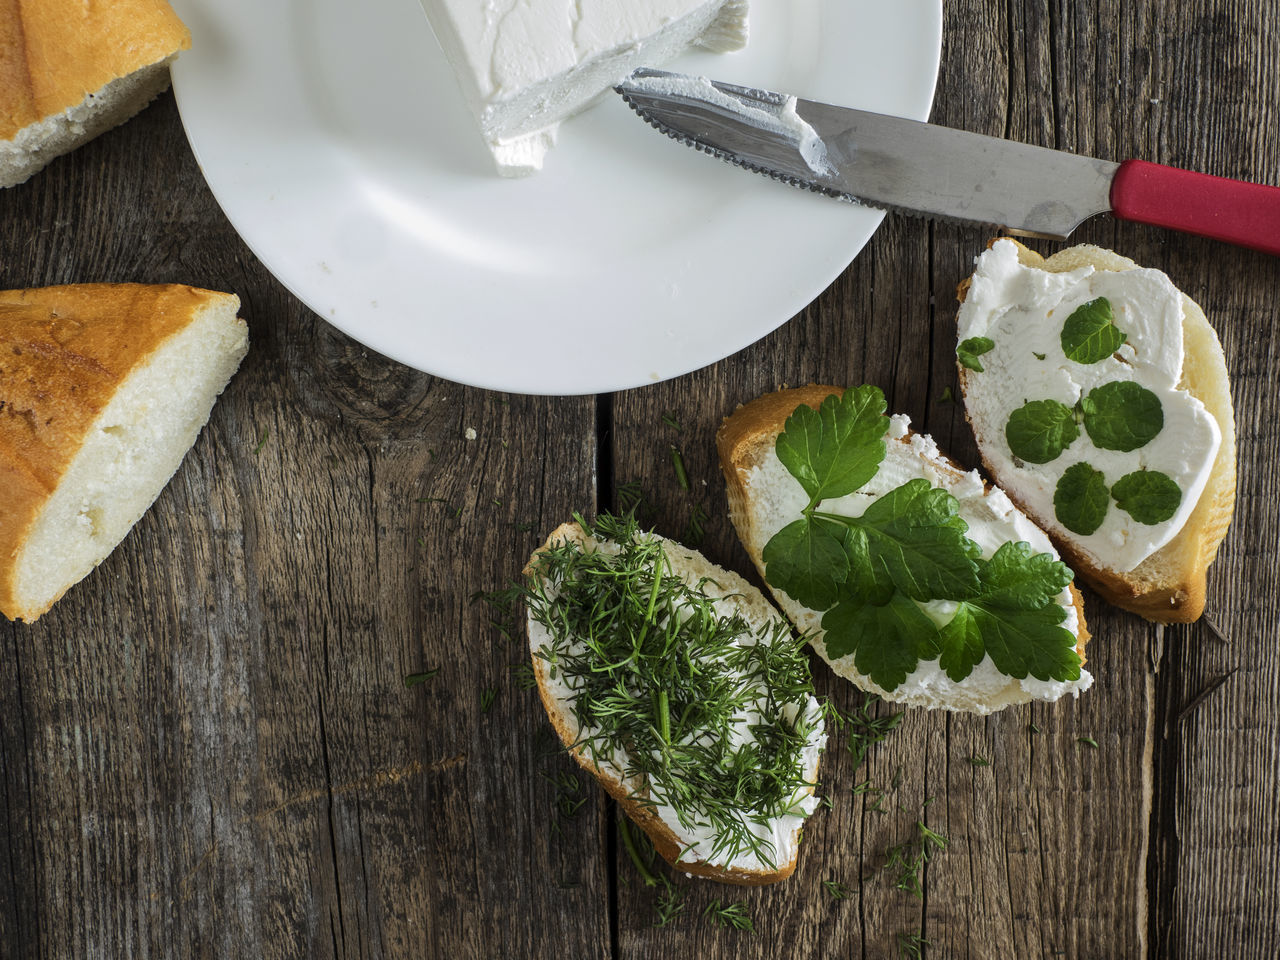 bruschetta with feta cheese and chopped spicy herbs on an old wooden weathered table Background Bread Bruschetta Cheese Chopped Feta Food Freshness Green Color Healthy Eating Herbs No People Old Planks Spicy Table Weathered Wood - Material Wooden